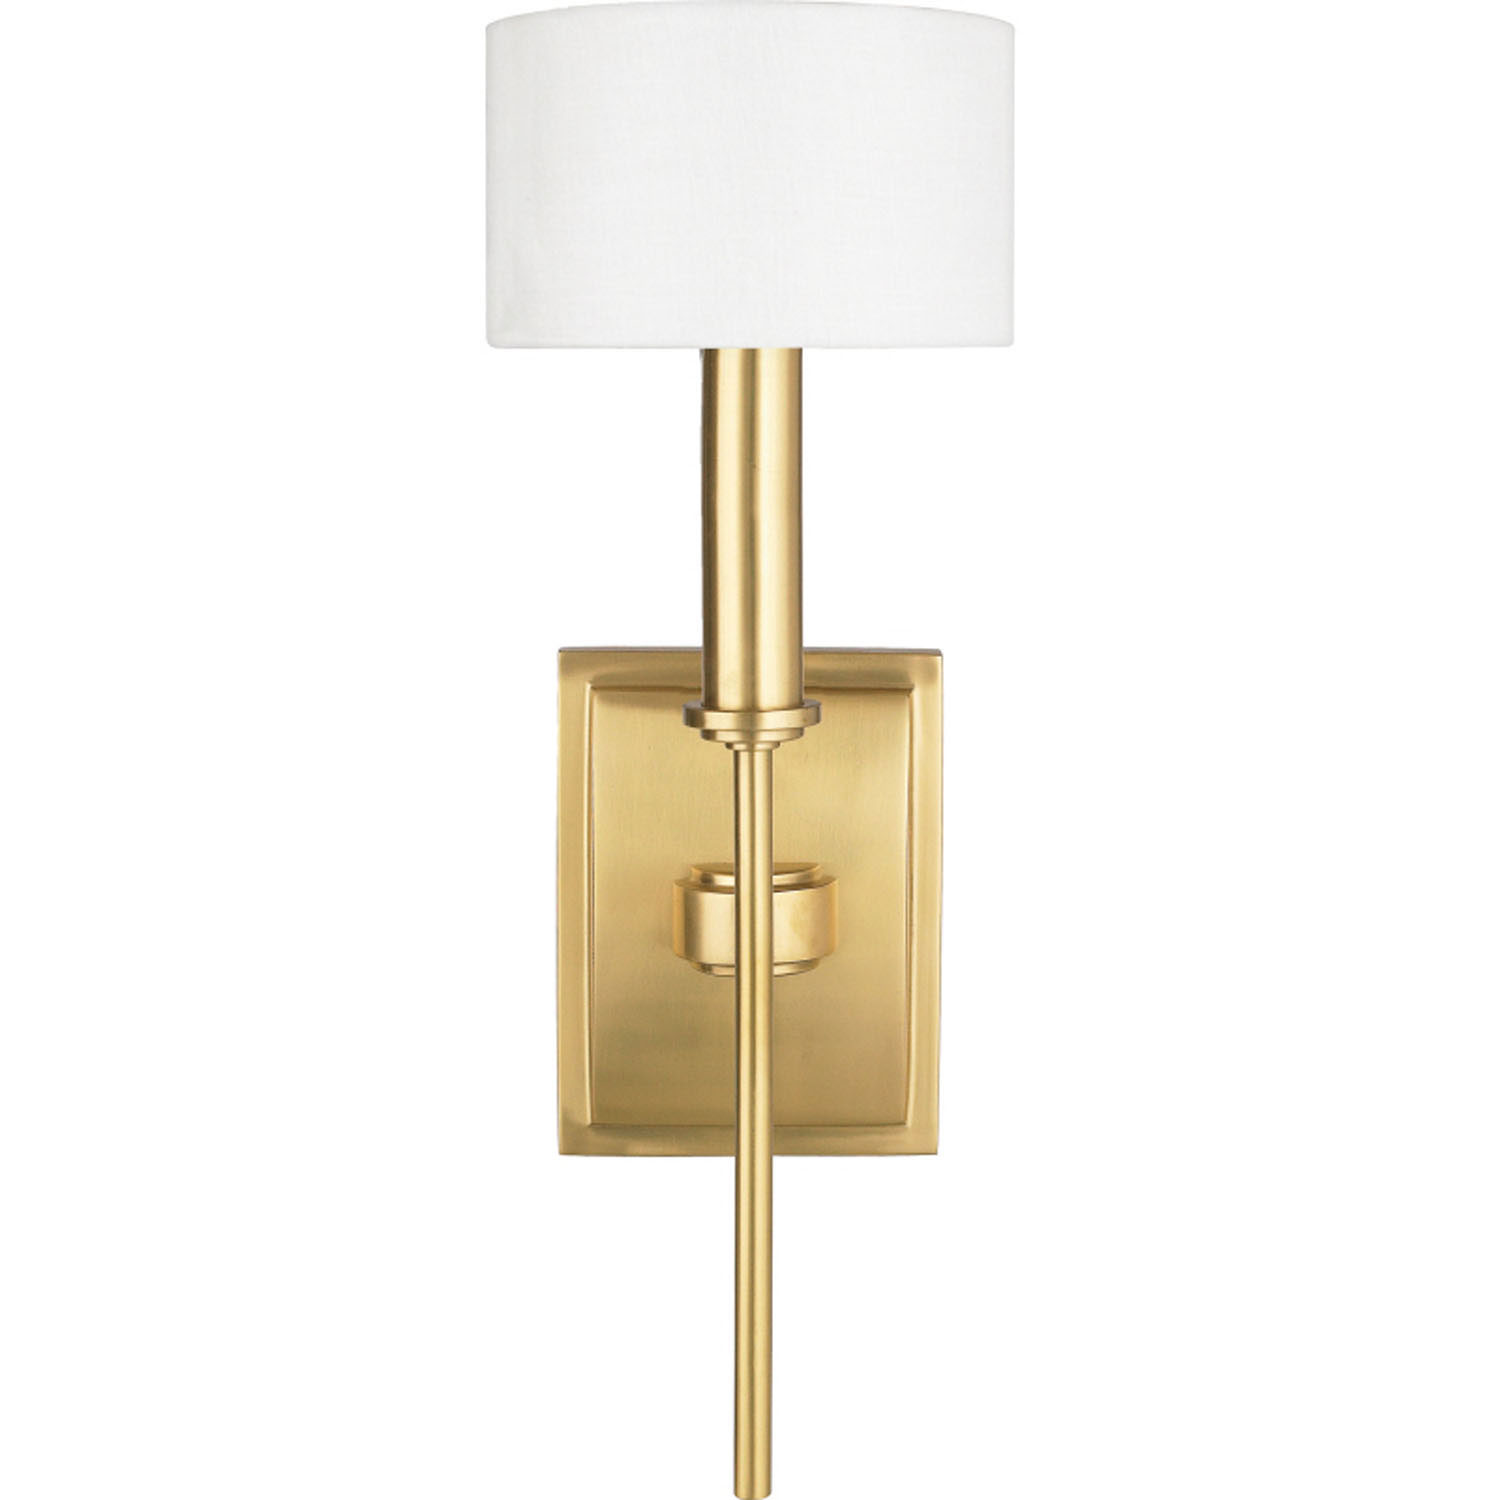 Prairie Perch: My Top 5 Sconces